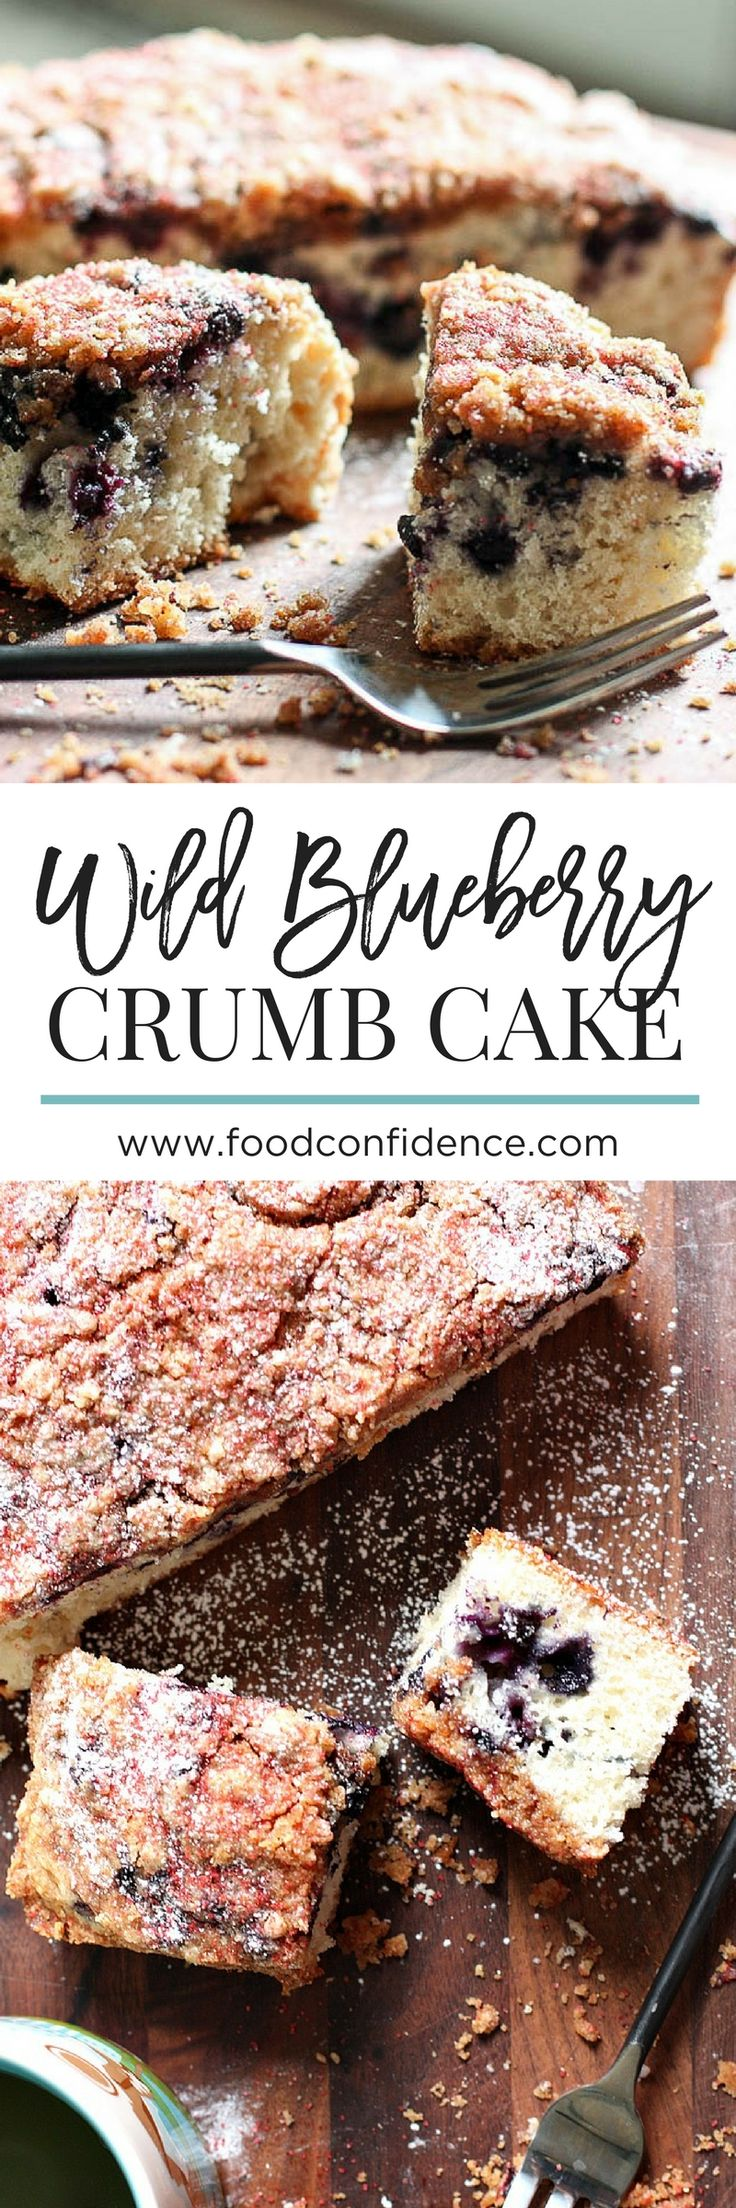 This Wild Blueberry Crumb Cake is super easy to make, but is impressive enough to serve as a special occasion breakfast or dessert! Wild blueberries sneak some antioxidants in there, too!